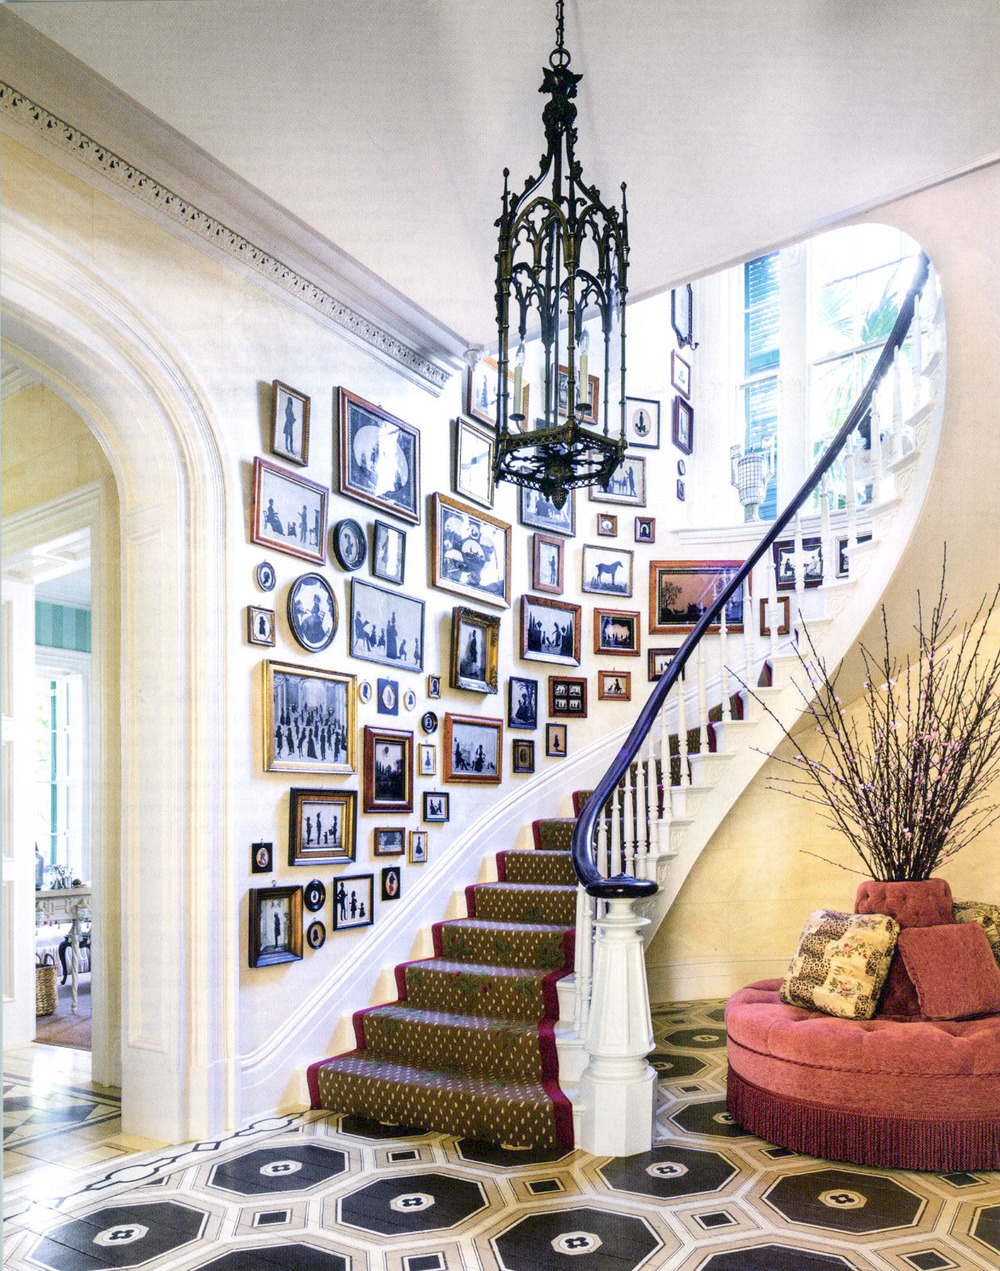 Architectural Digest October 2014 | Photography by Scott Frances